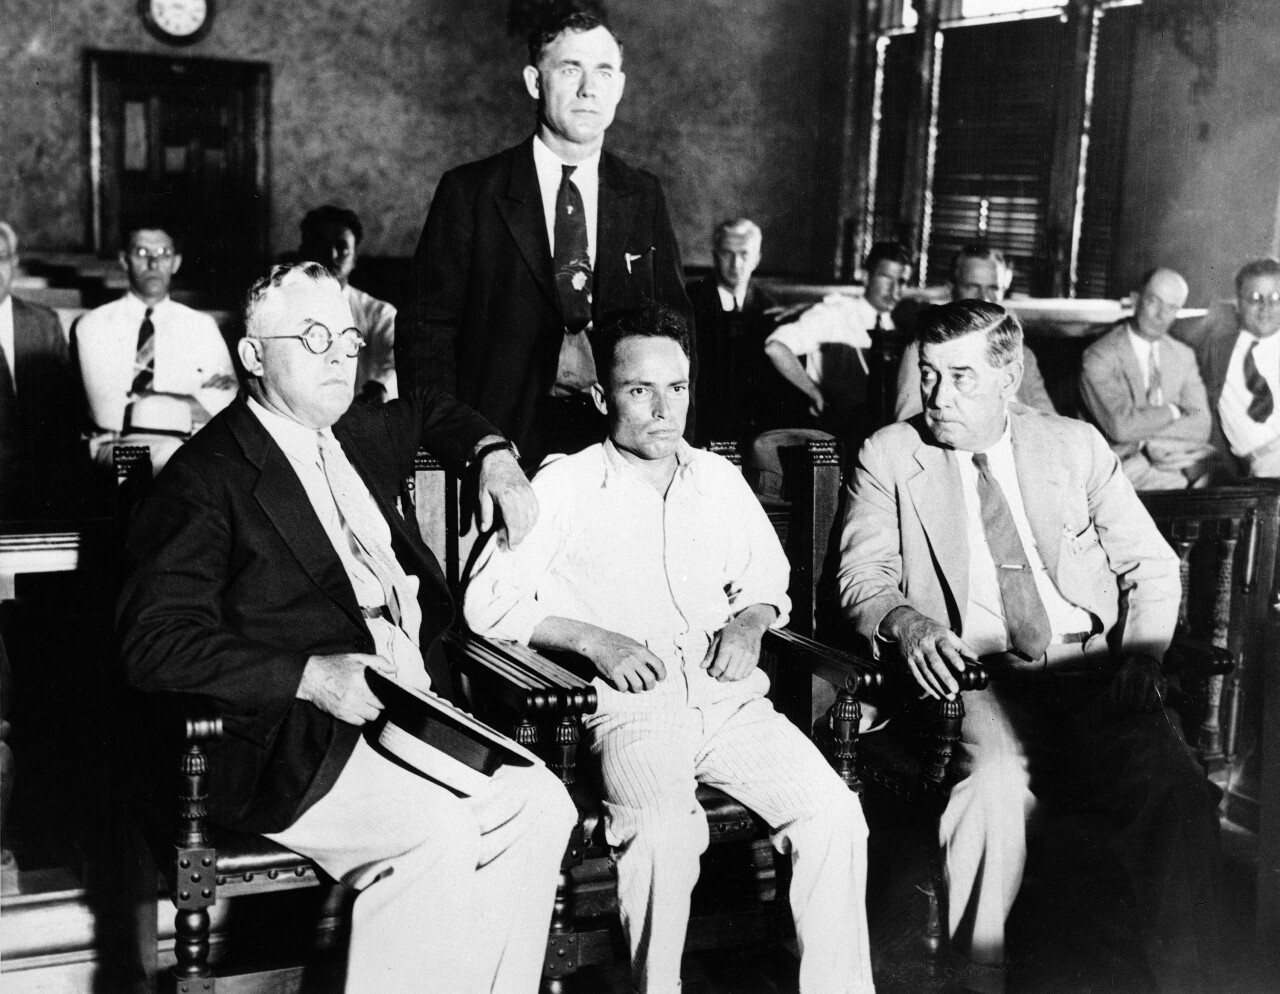 Giuseppe Zangara, Hackensack, N.J. bricklayer, center, is shown in criminal court in Miami, Fla., Feb. 17, 1933, surrounded by unidentified deputies, waiting for arraignment for his attempt to assassinate President-elect Franklin Roosevelt and wounding Chicago Mayor Anton Cermak, and four others, on Feb. 15. Arraignment was postponed. (AP Photo)